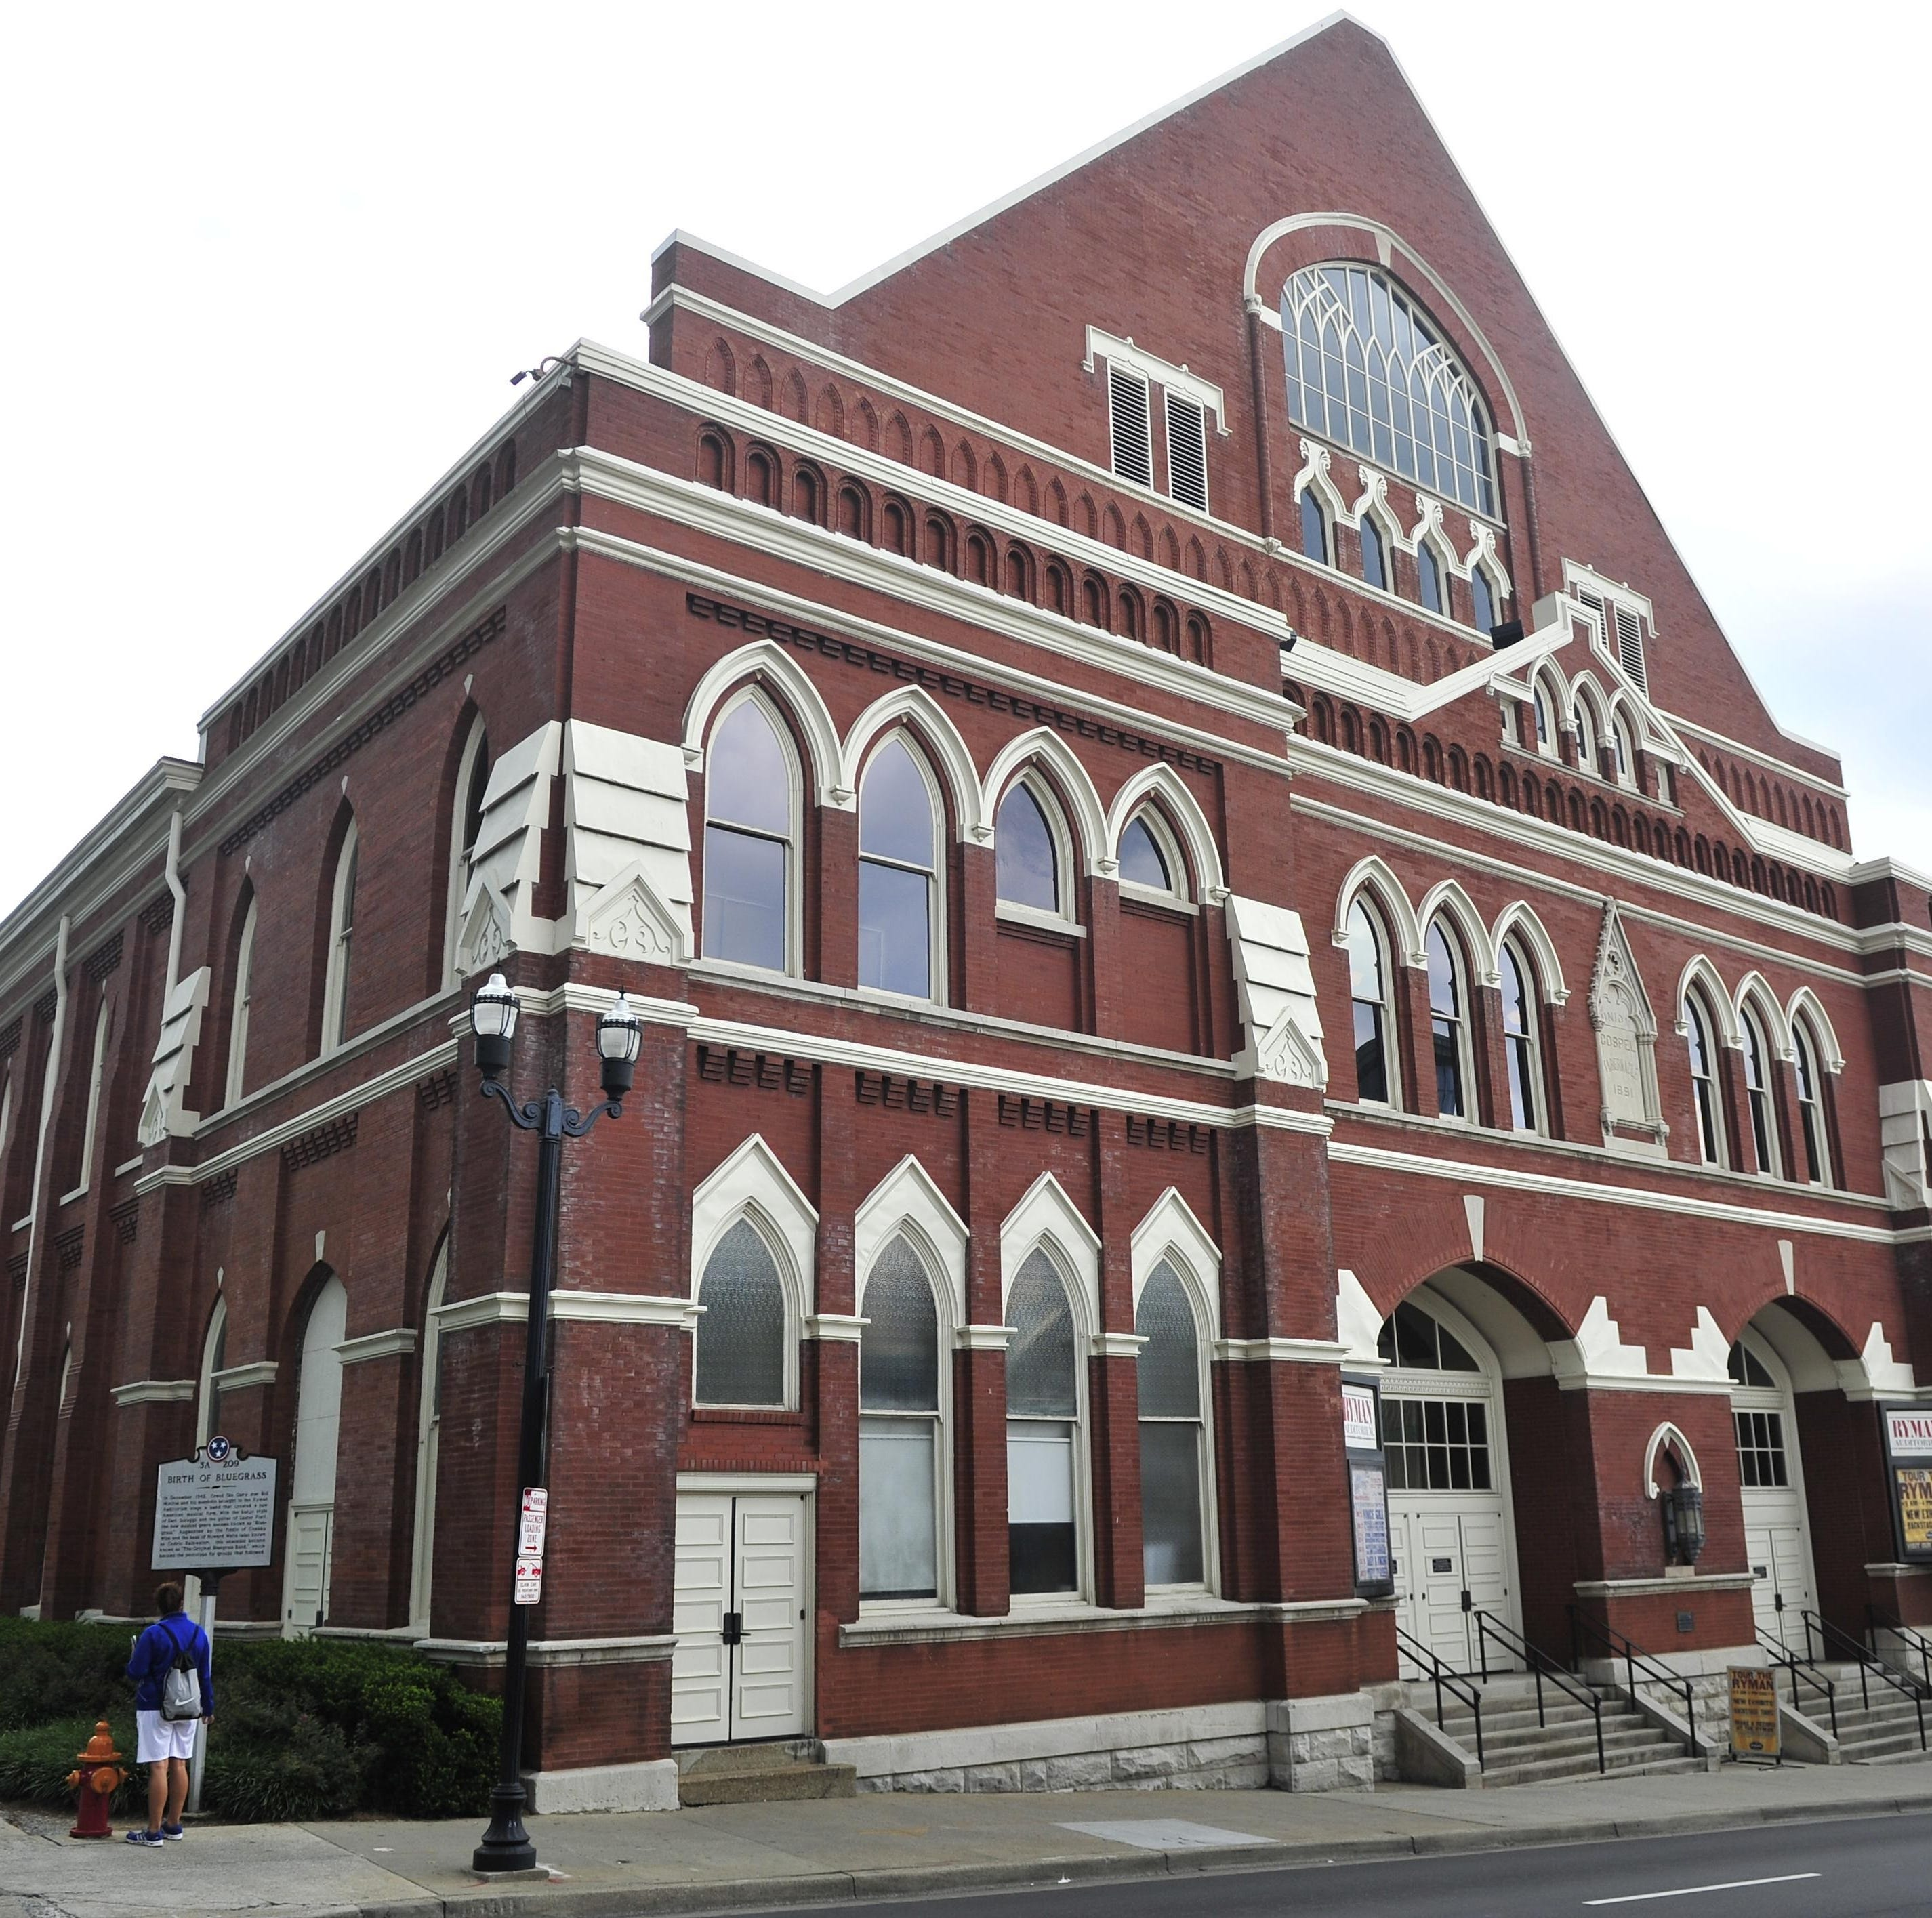 Explore the Ryman for free on Sunday